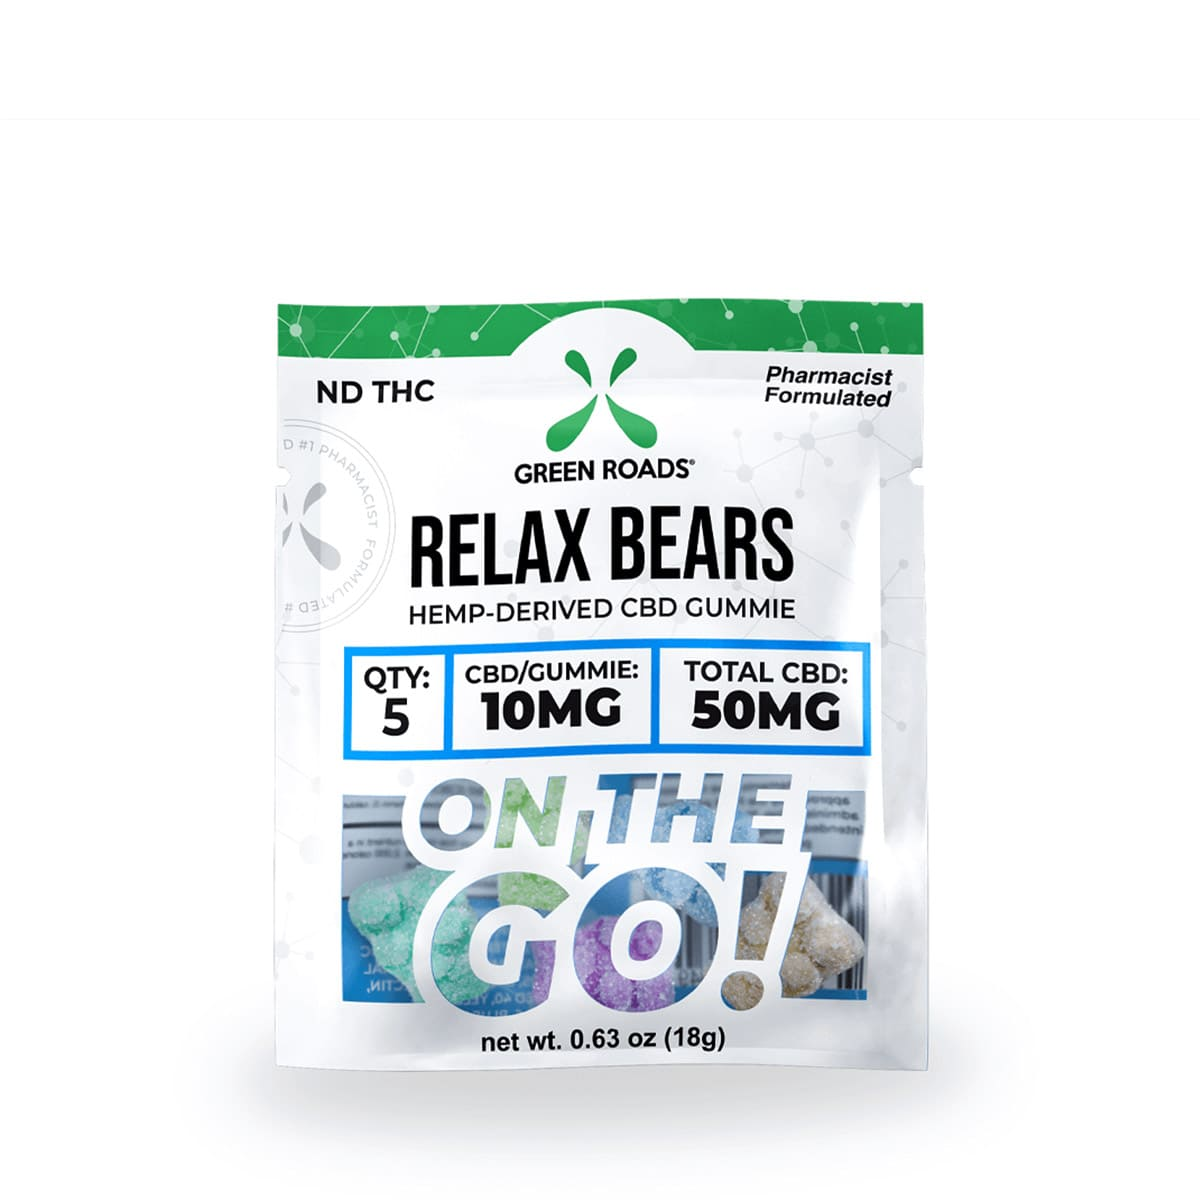 Green Roads CBD Relax Bears OTG - 50mg (10mg CBD per gummy) - 0,63oz